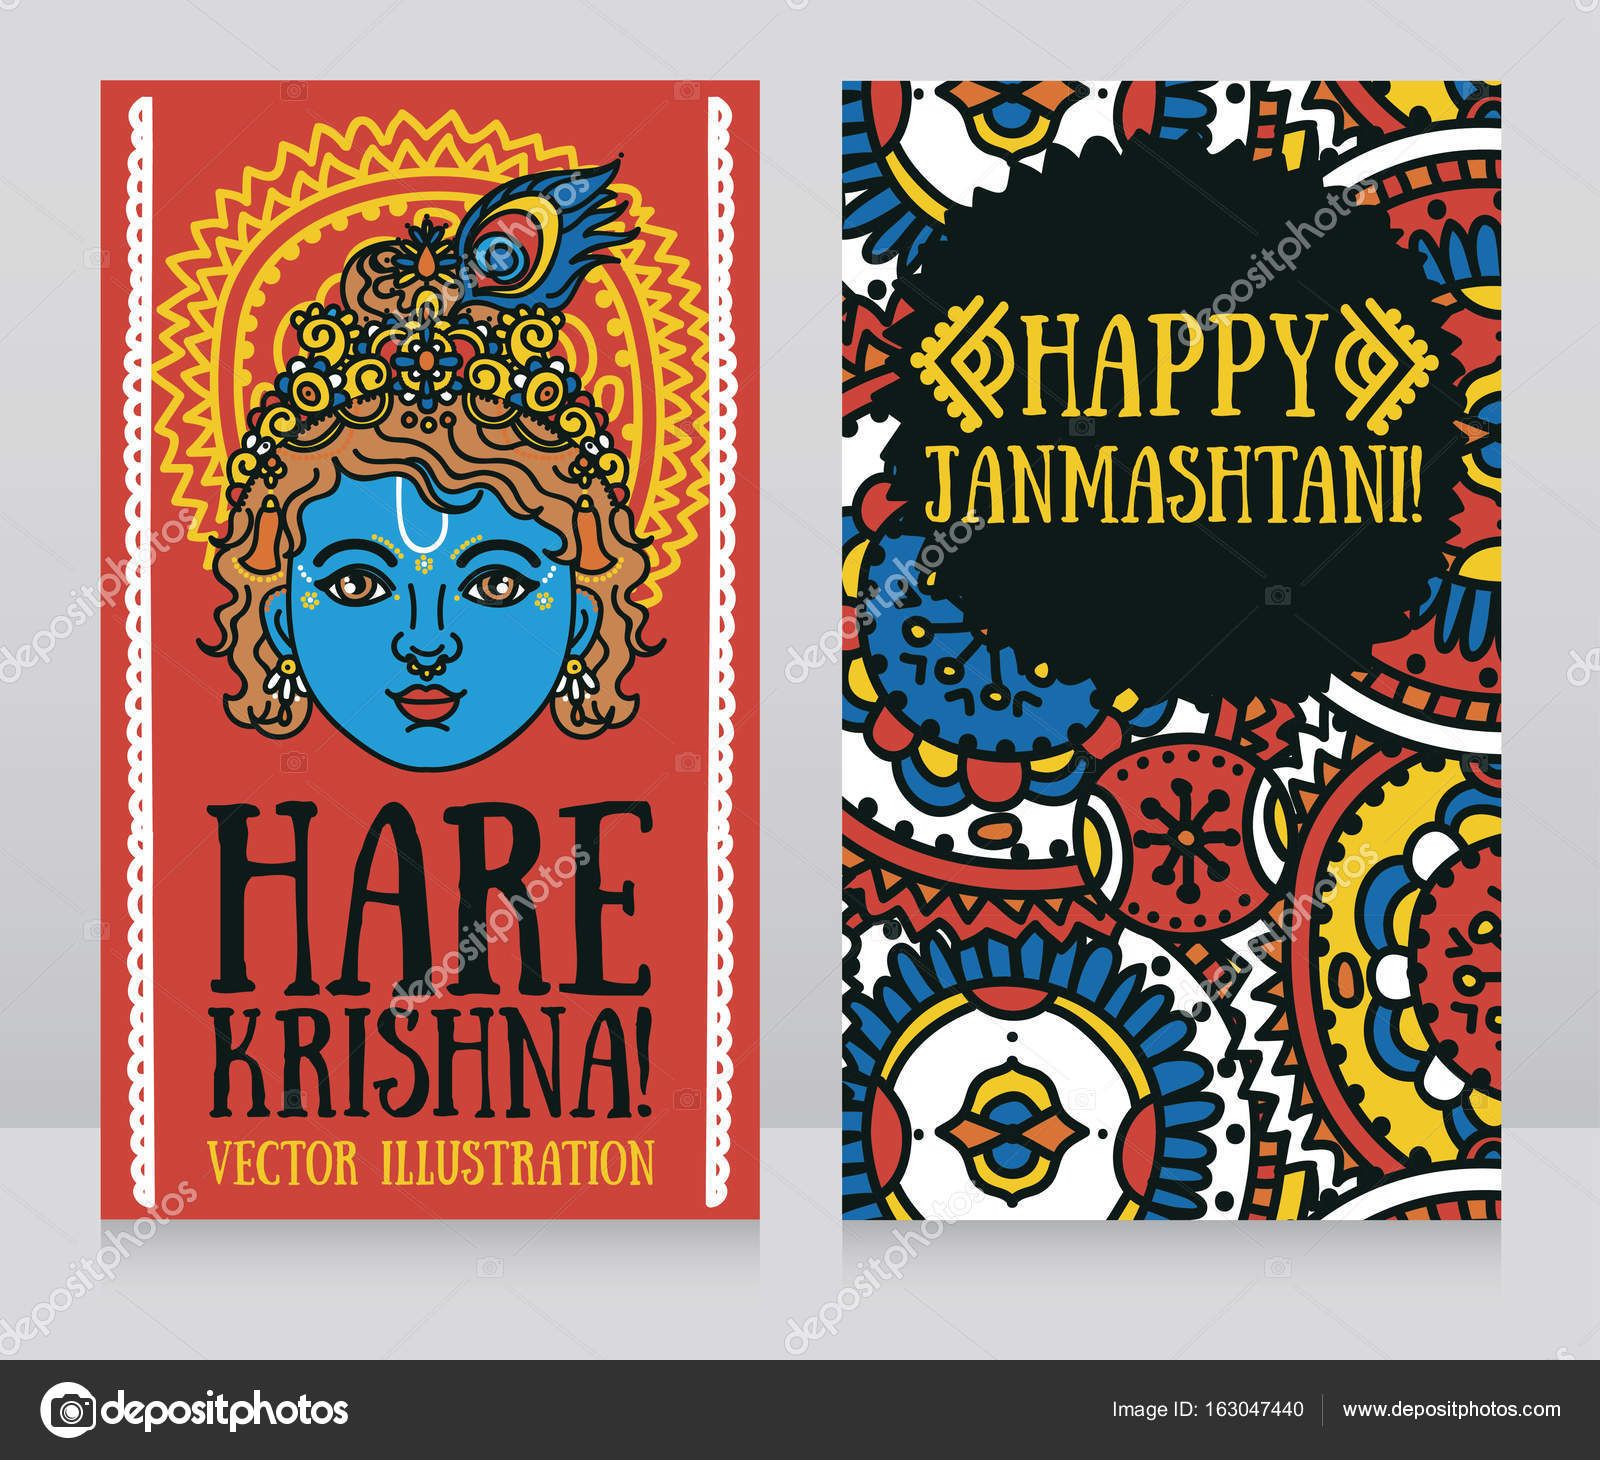 Two greeting card for krishna birthday with little krishna portrait two greeting card for krishna birthday with little krishna portrait stock vector kristyandbryce Gallery